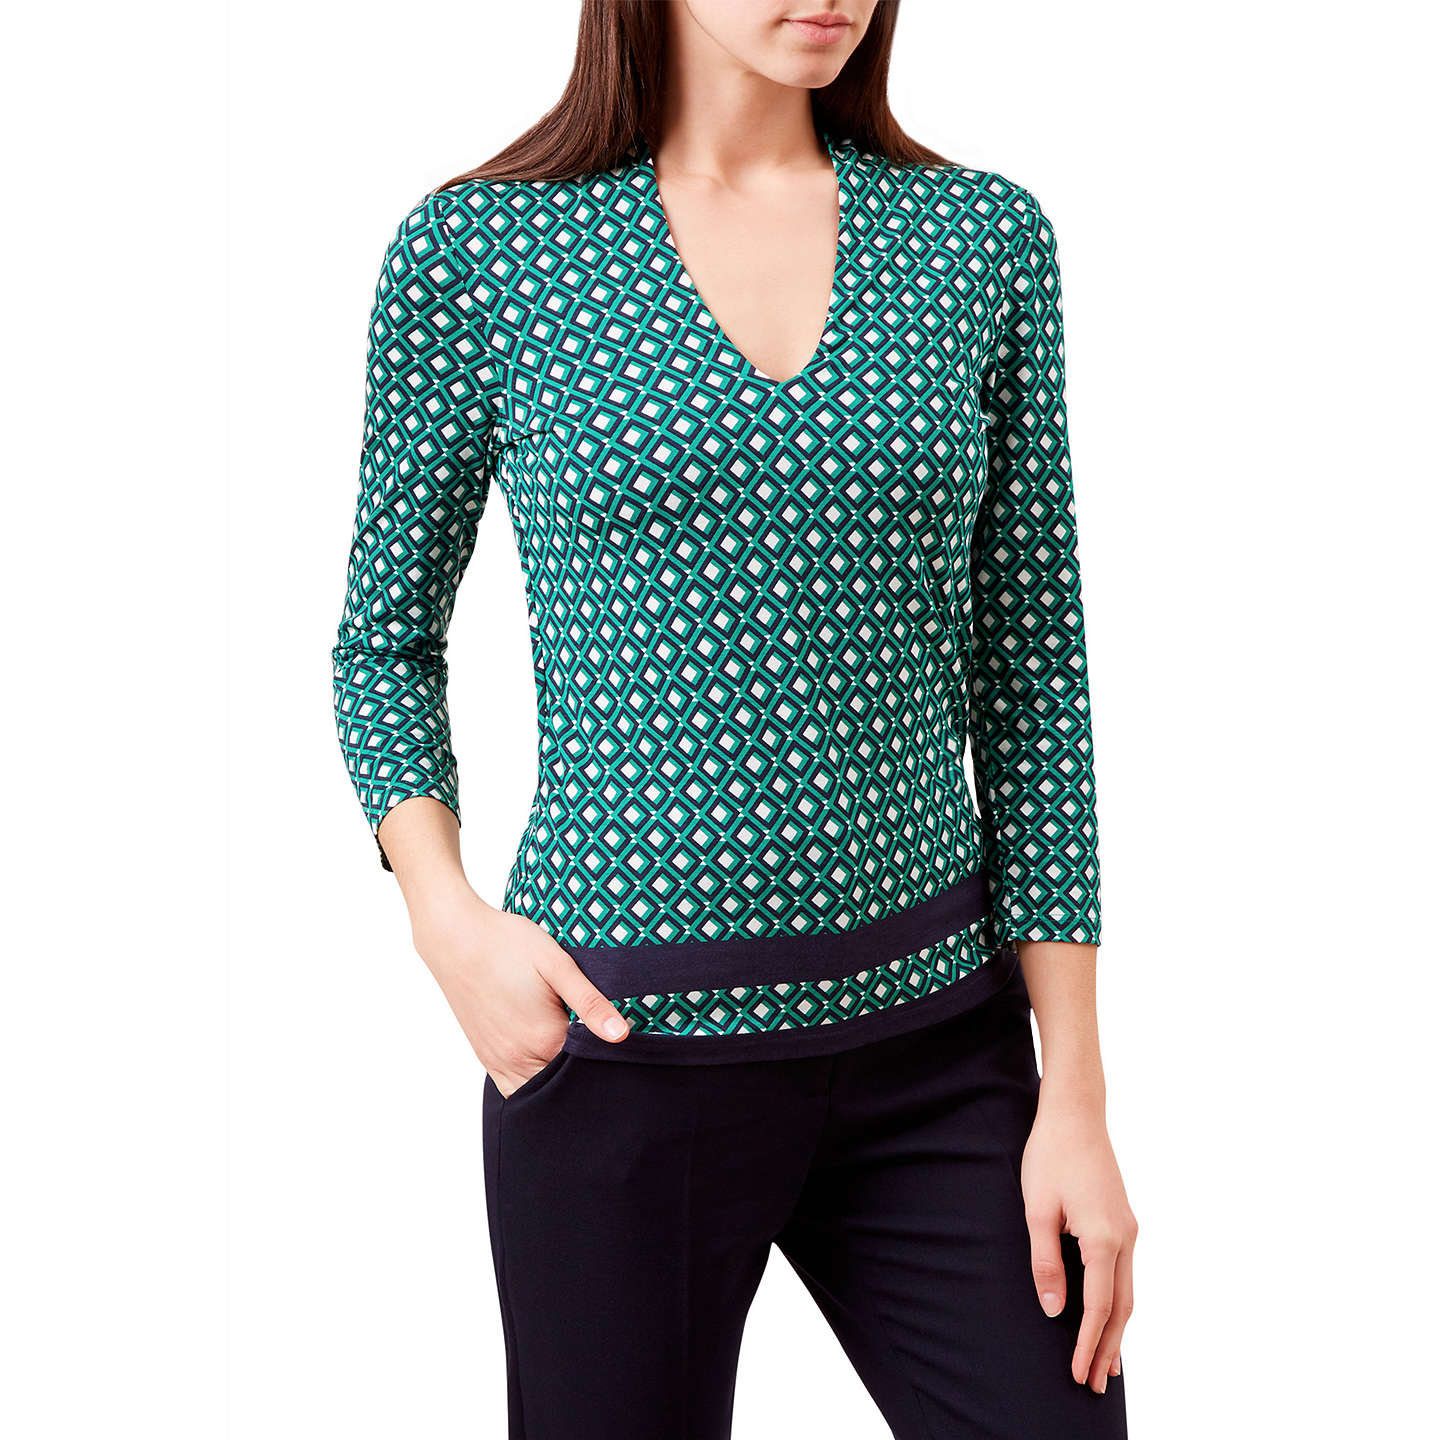 Hobbs Aimee Printed Top, Green/Multi | XS at John Lewis